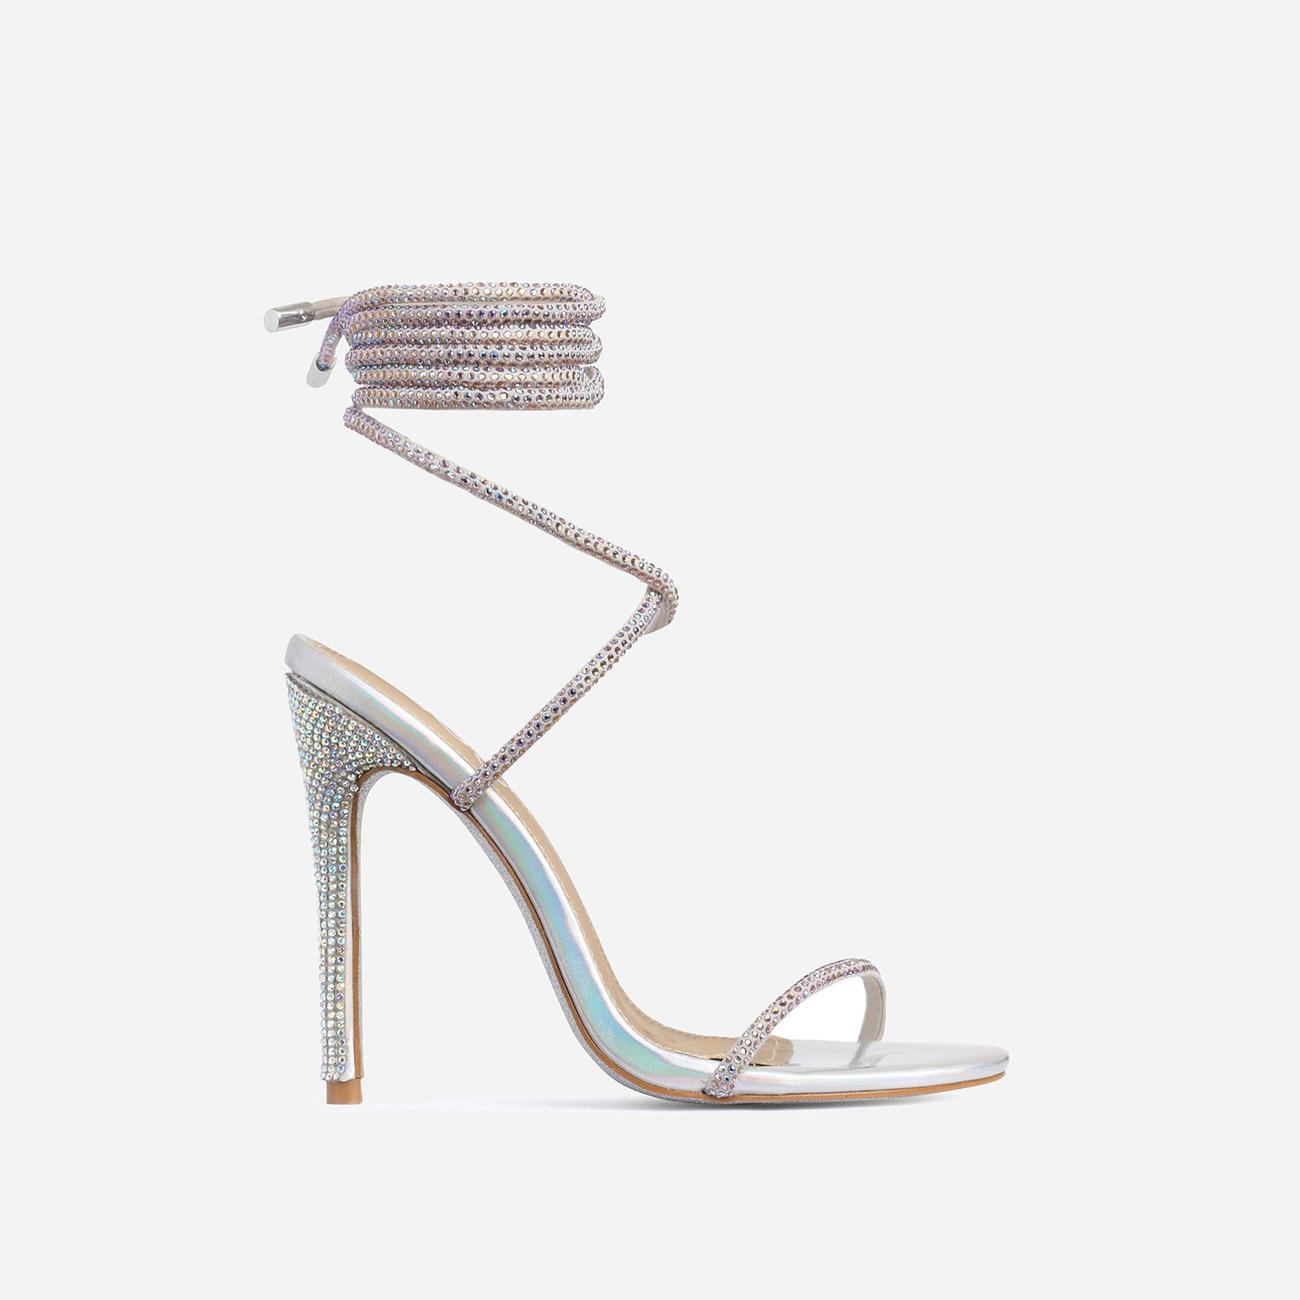 Carmella Glitter Sole Diamante Detail Lace Up Heel In Silver Holographic Faux Leather Image 2